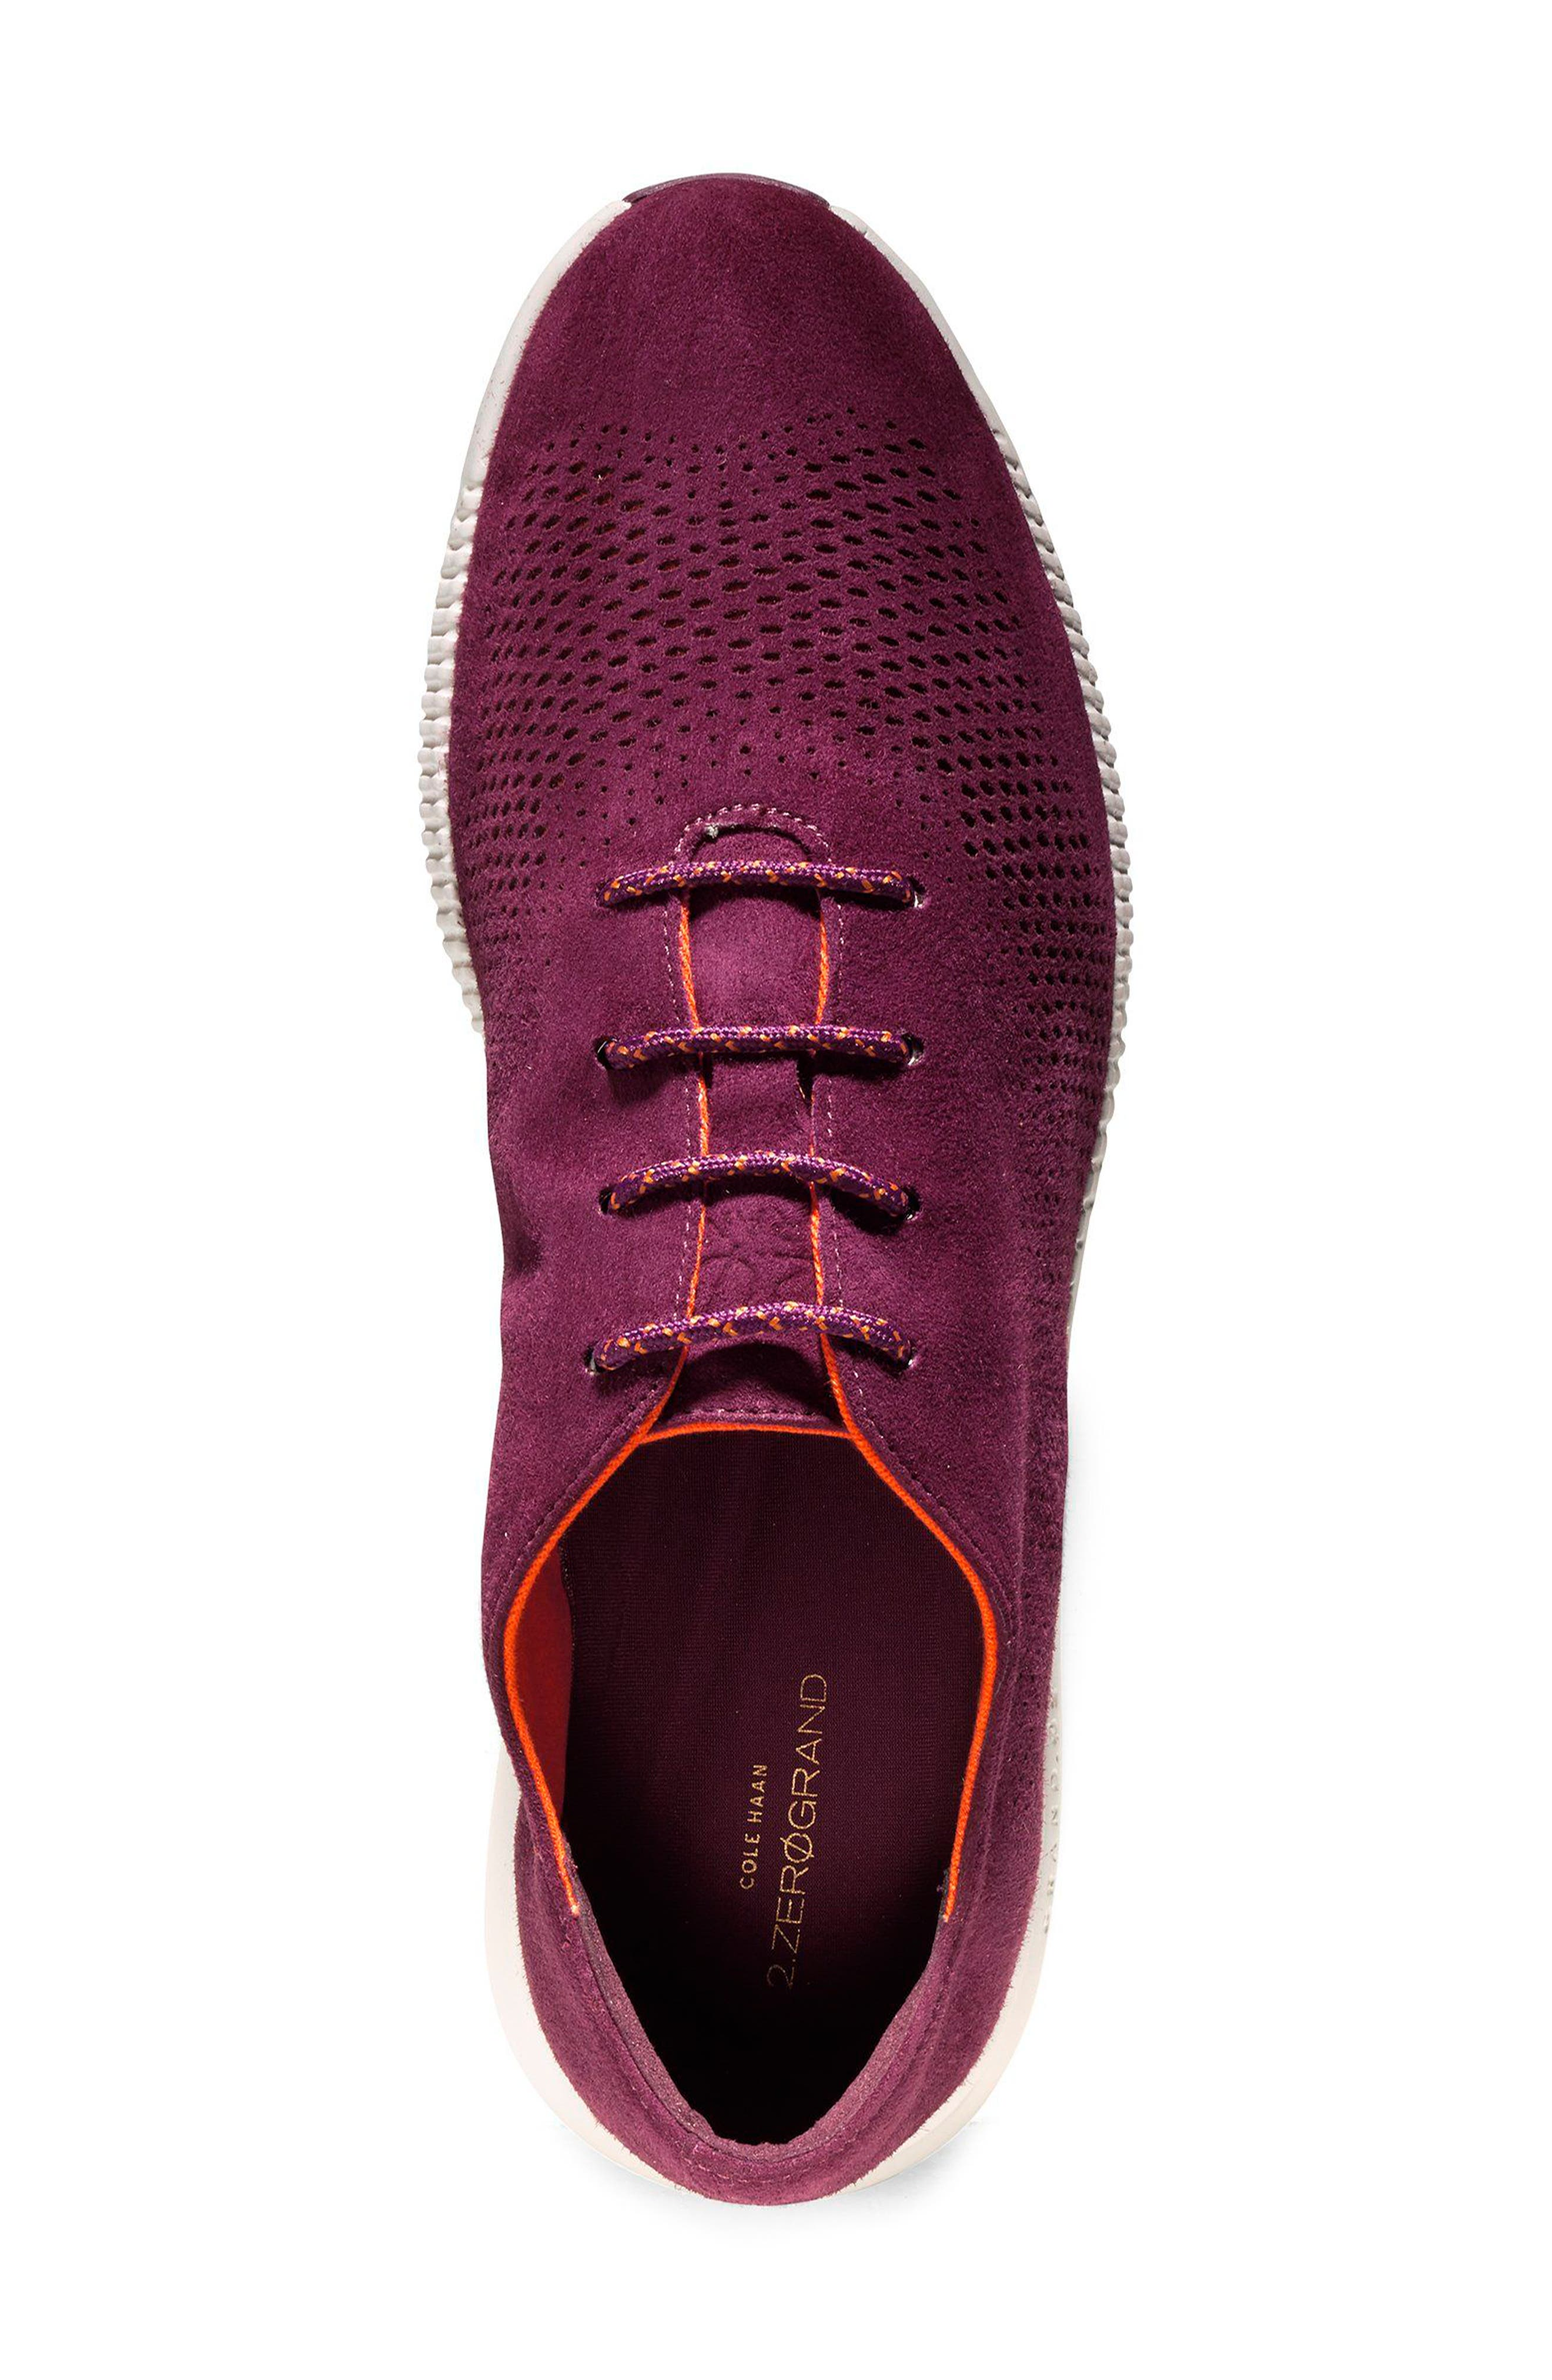 'ZeroGrand' Perforated Wingtip,                             Alternate thumbnail 122, color,